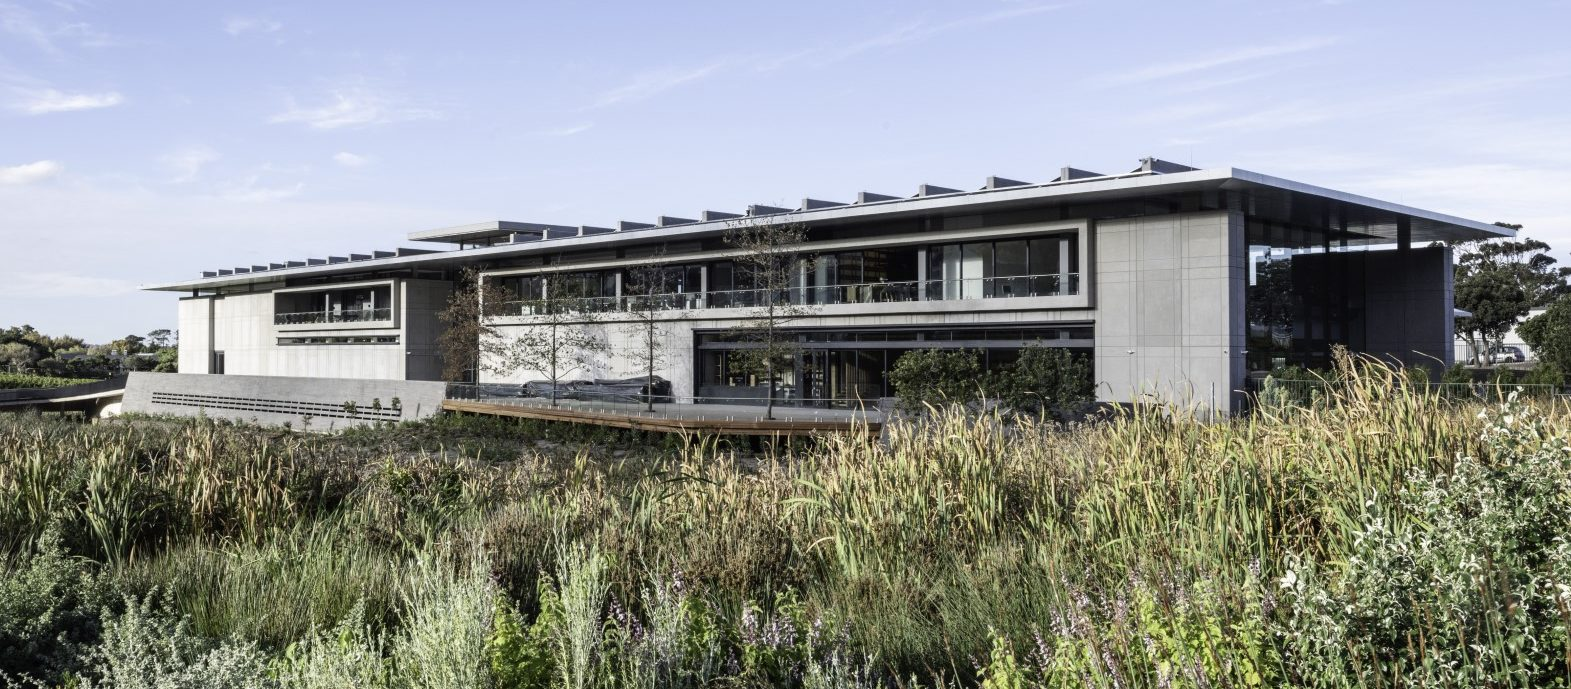 dhk's design for Norval Foundation displays and protects art while maximising views of Cape Town's natural landscape